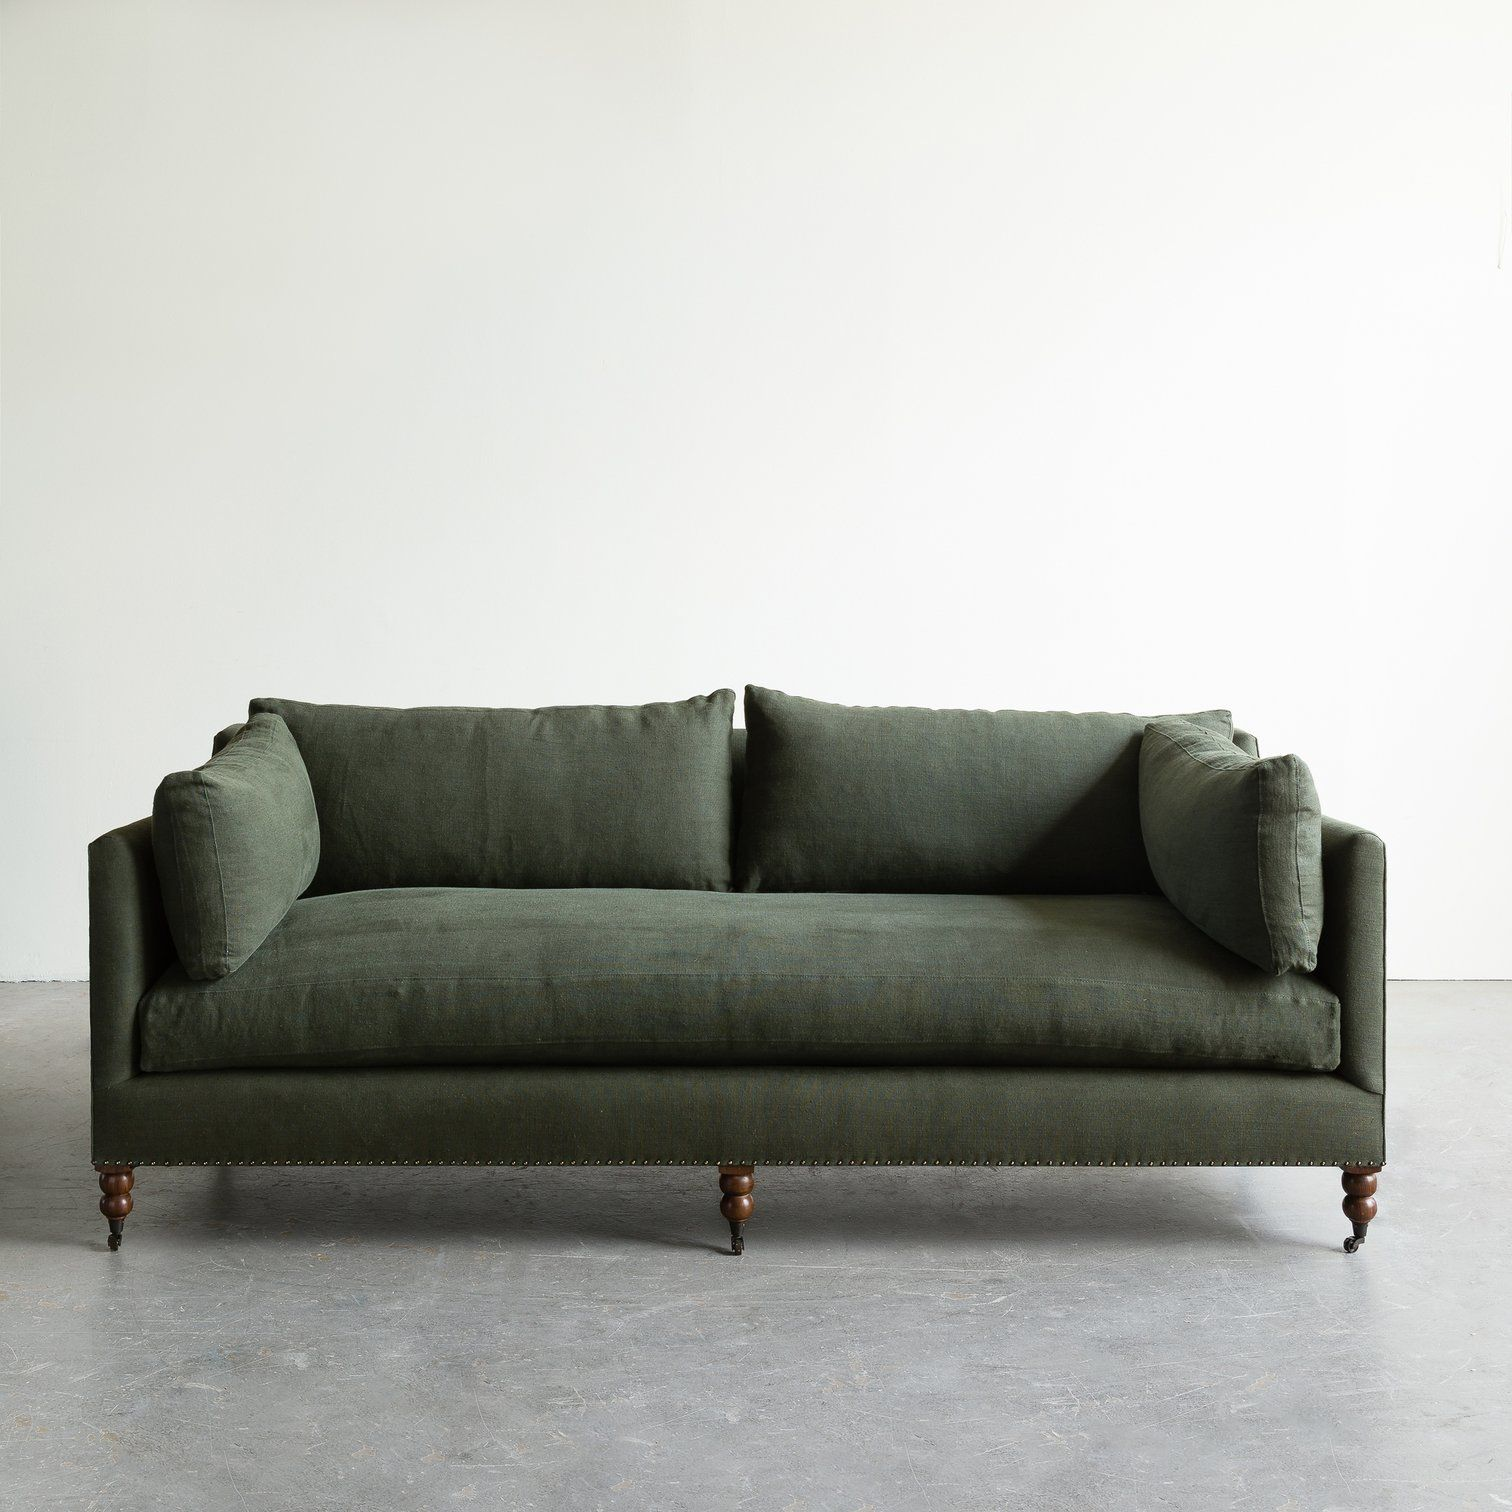 The Best Places To Buy Sofas Online With Images Sofa Buy Sofa